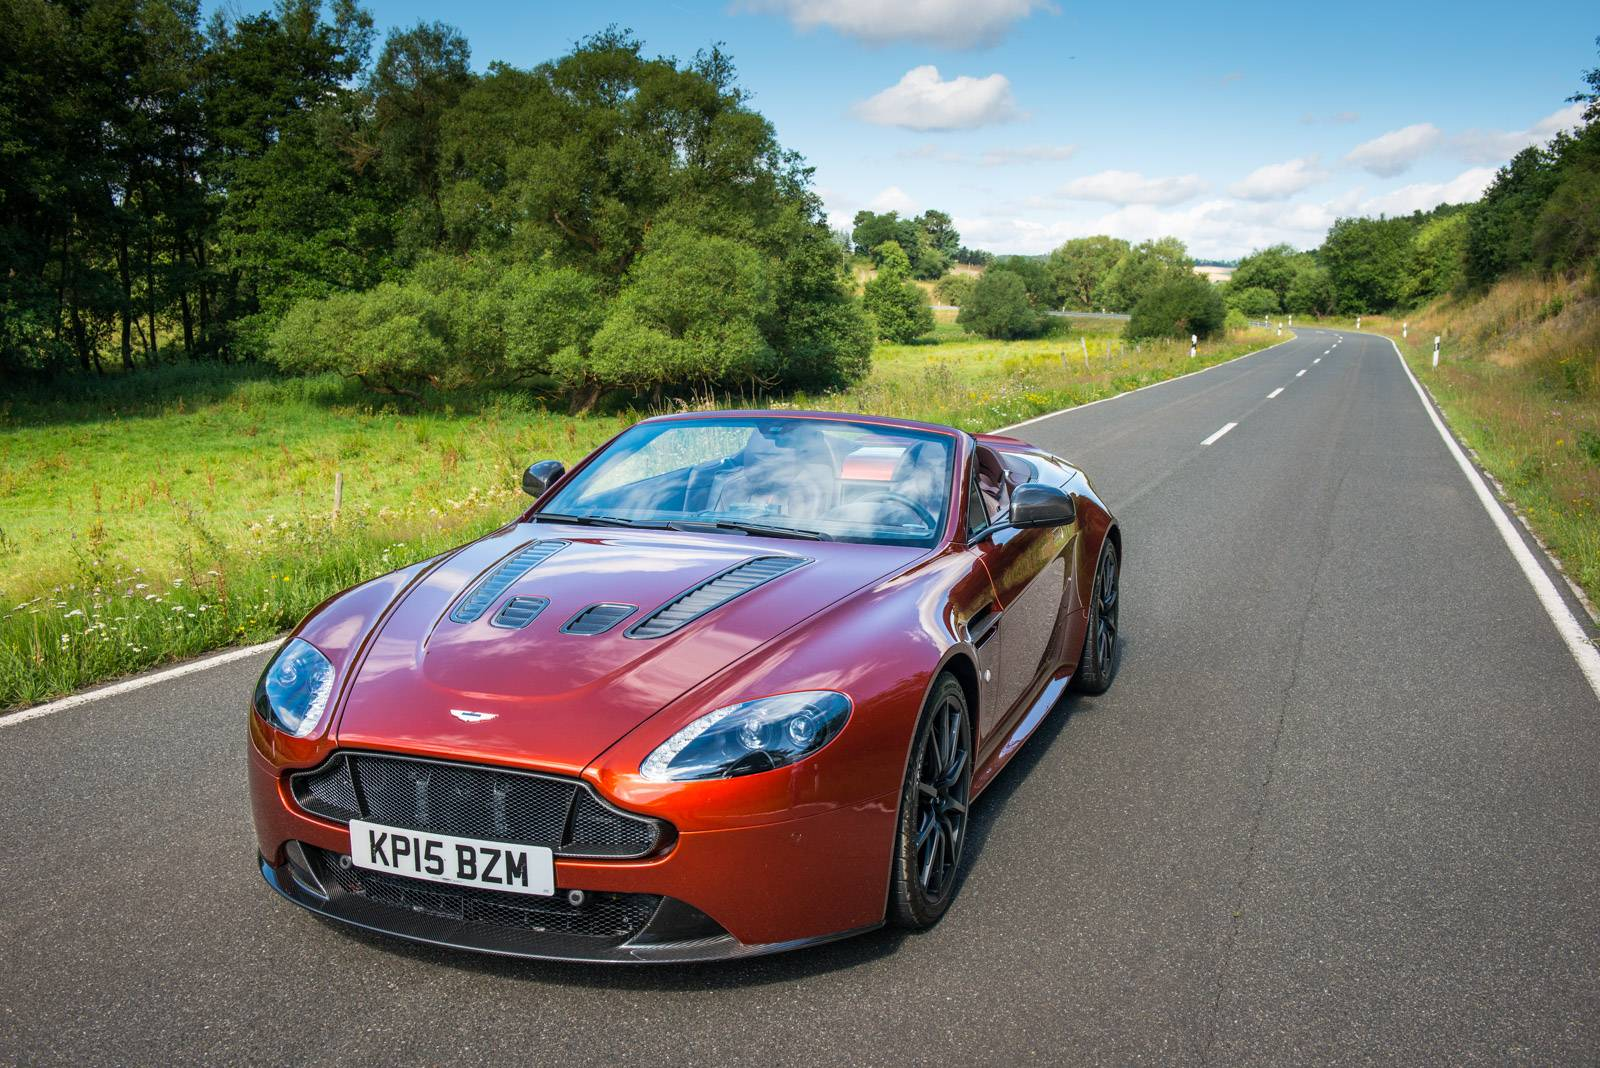 2016 aston martin v12 vantage s roadster review gtspirit. Black Bedroom Furniture Sets. Home Design Ideas